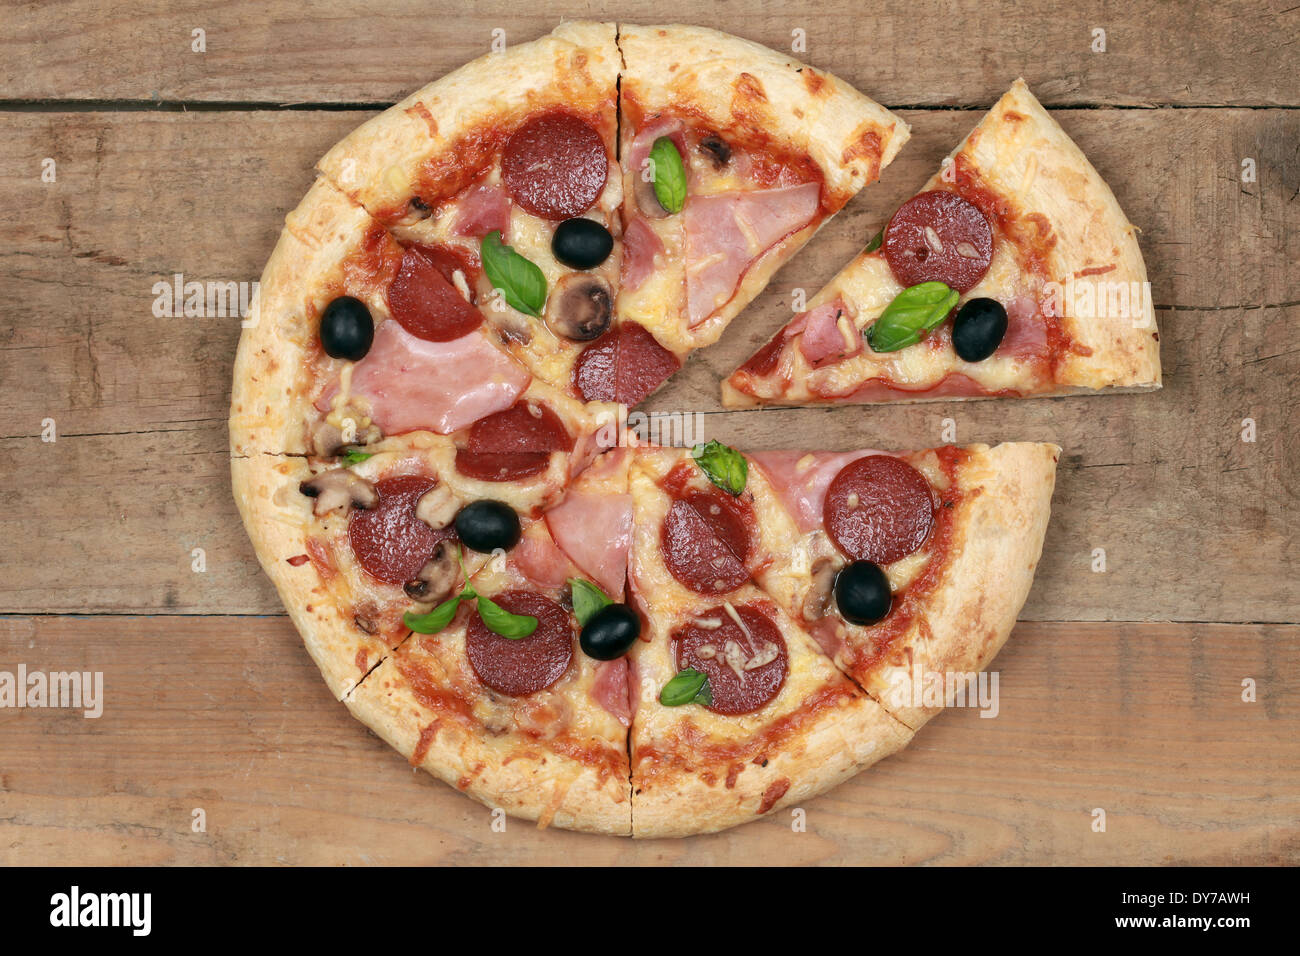 Sliced Deluxe Pizza with cheese, ham, pepperoni, mushrooms and olives on a wooden table Stock Photo